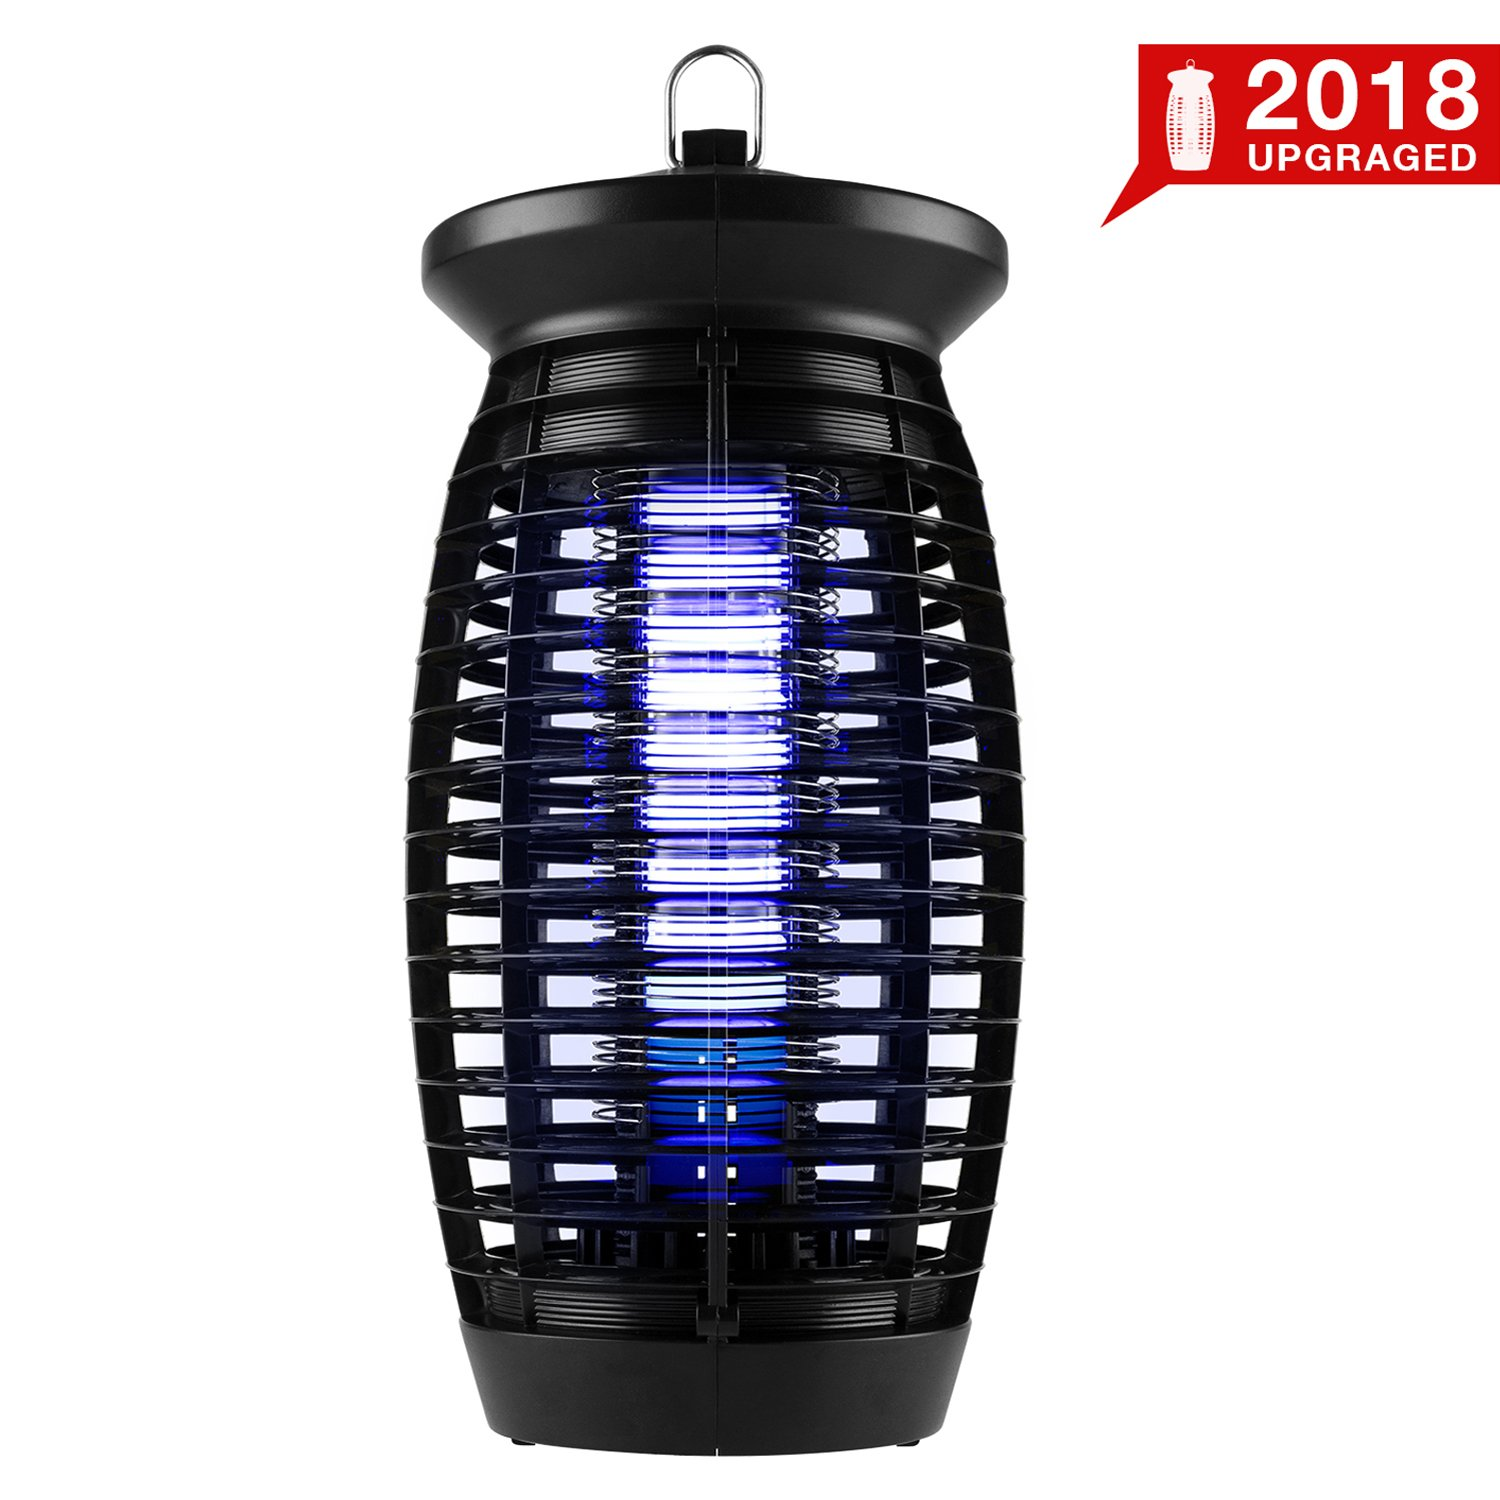 2018 Upgraded Electric Bug Zapper, Insect Killer, Mosquito Trap, Fly Gnat Trap with 120V UV Bug Light/500 Sq Ft Coverage for Home Office Store Indoor by Eastoan (Image #1)